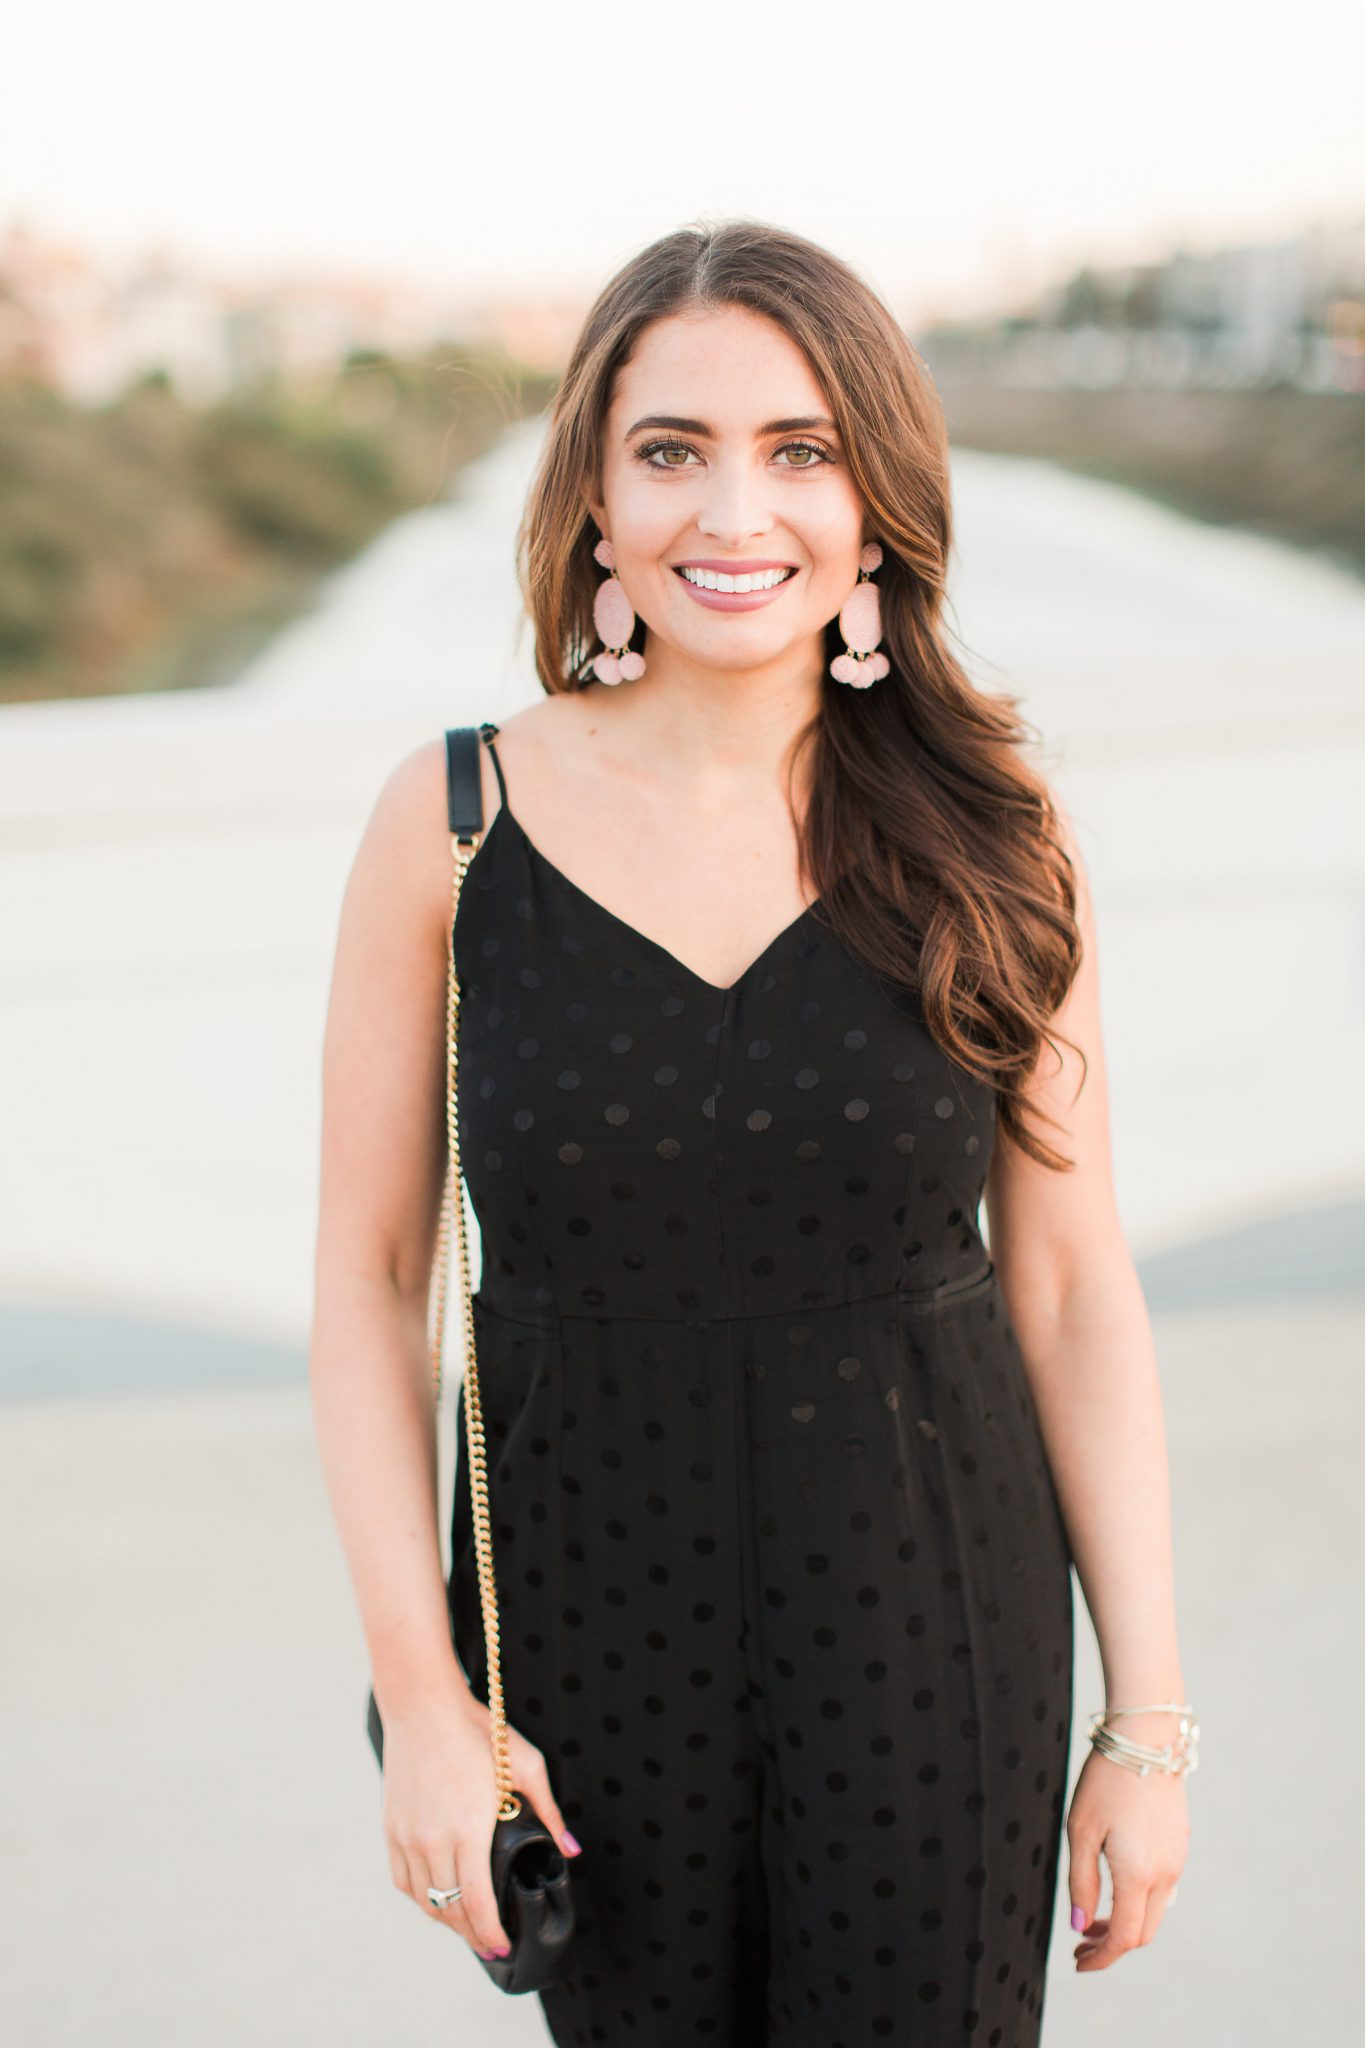 Black polka dot jumpsuit and pink earrings - Baublebar Earrings Sale Favorites by popular Orange County fashion blogger Maxie Elle